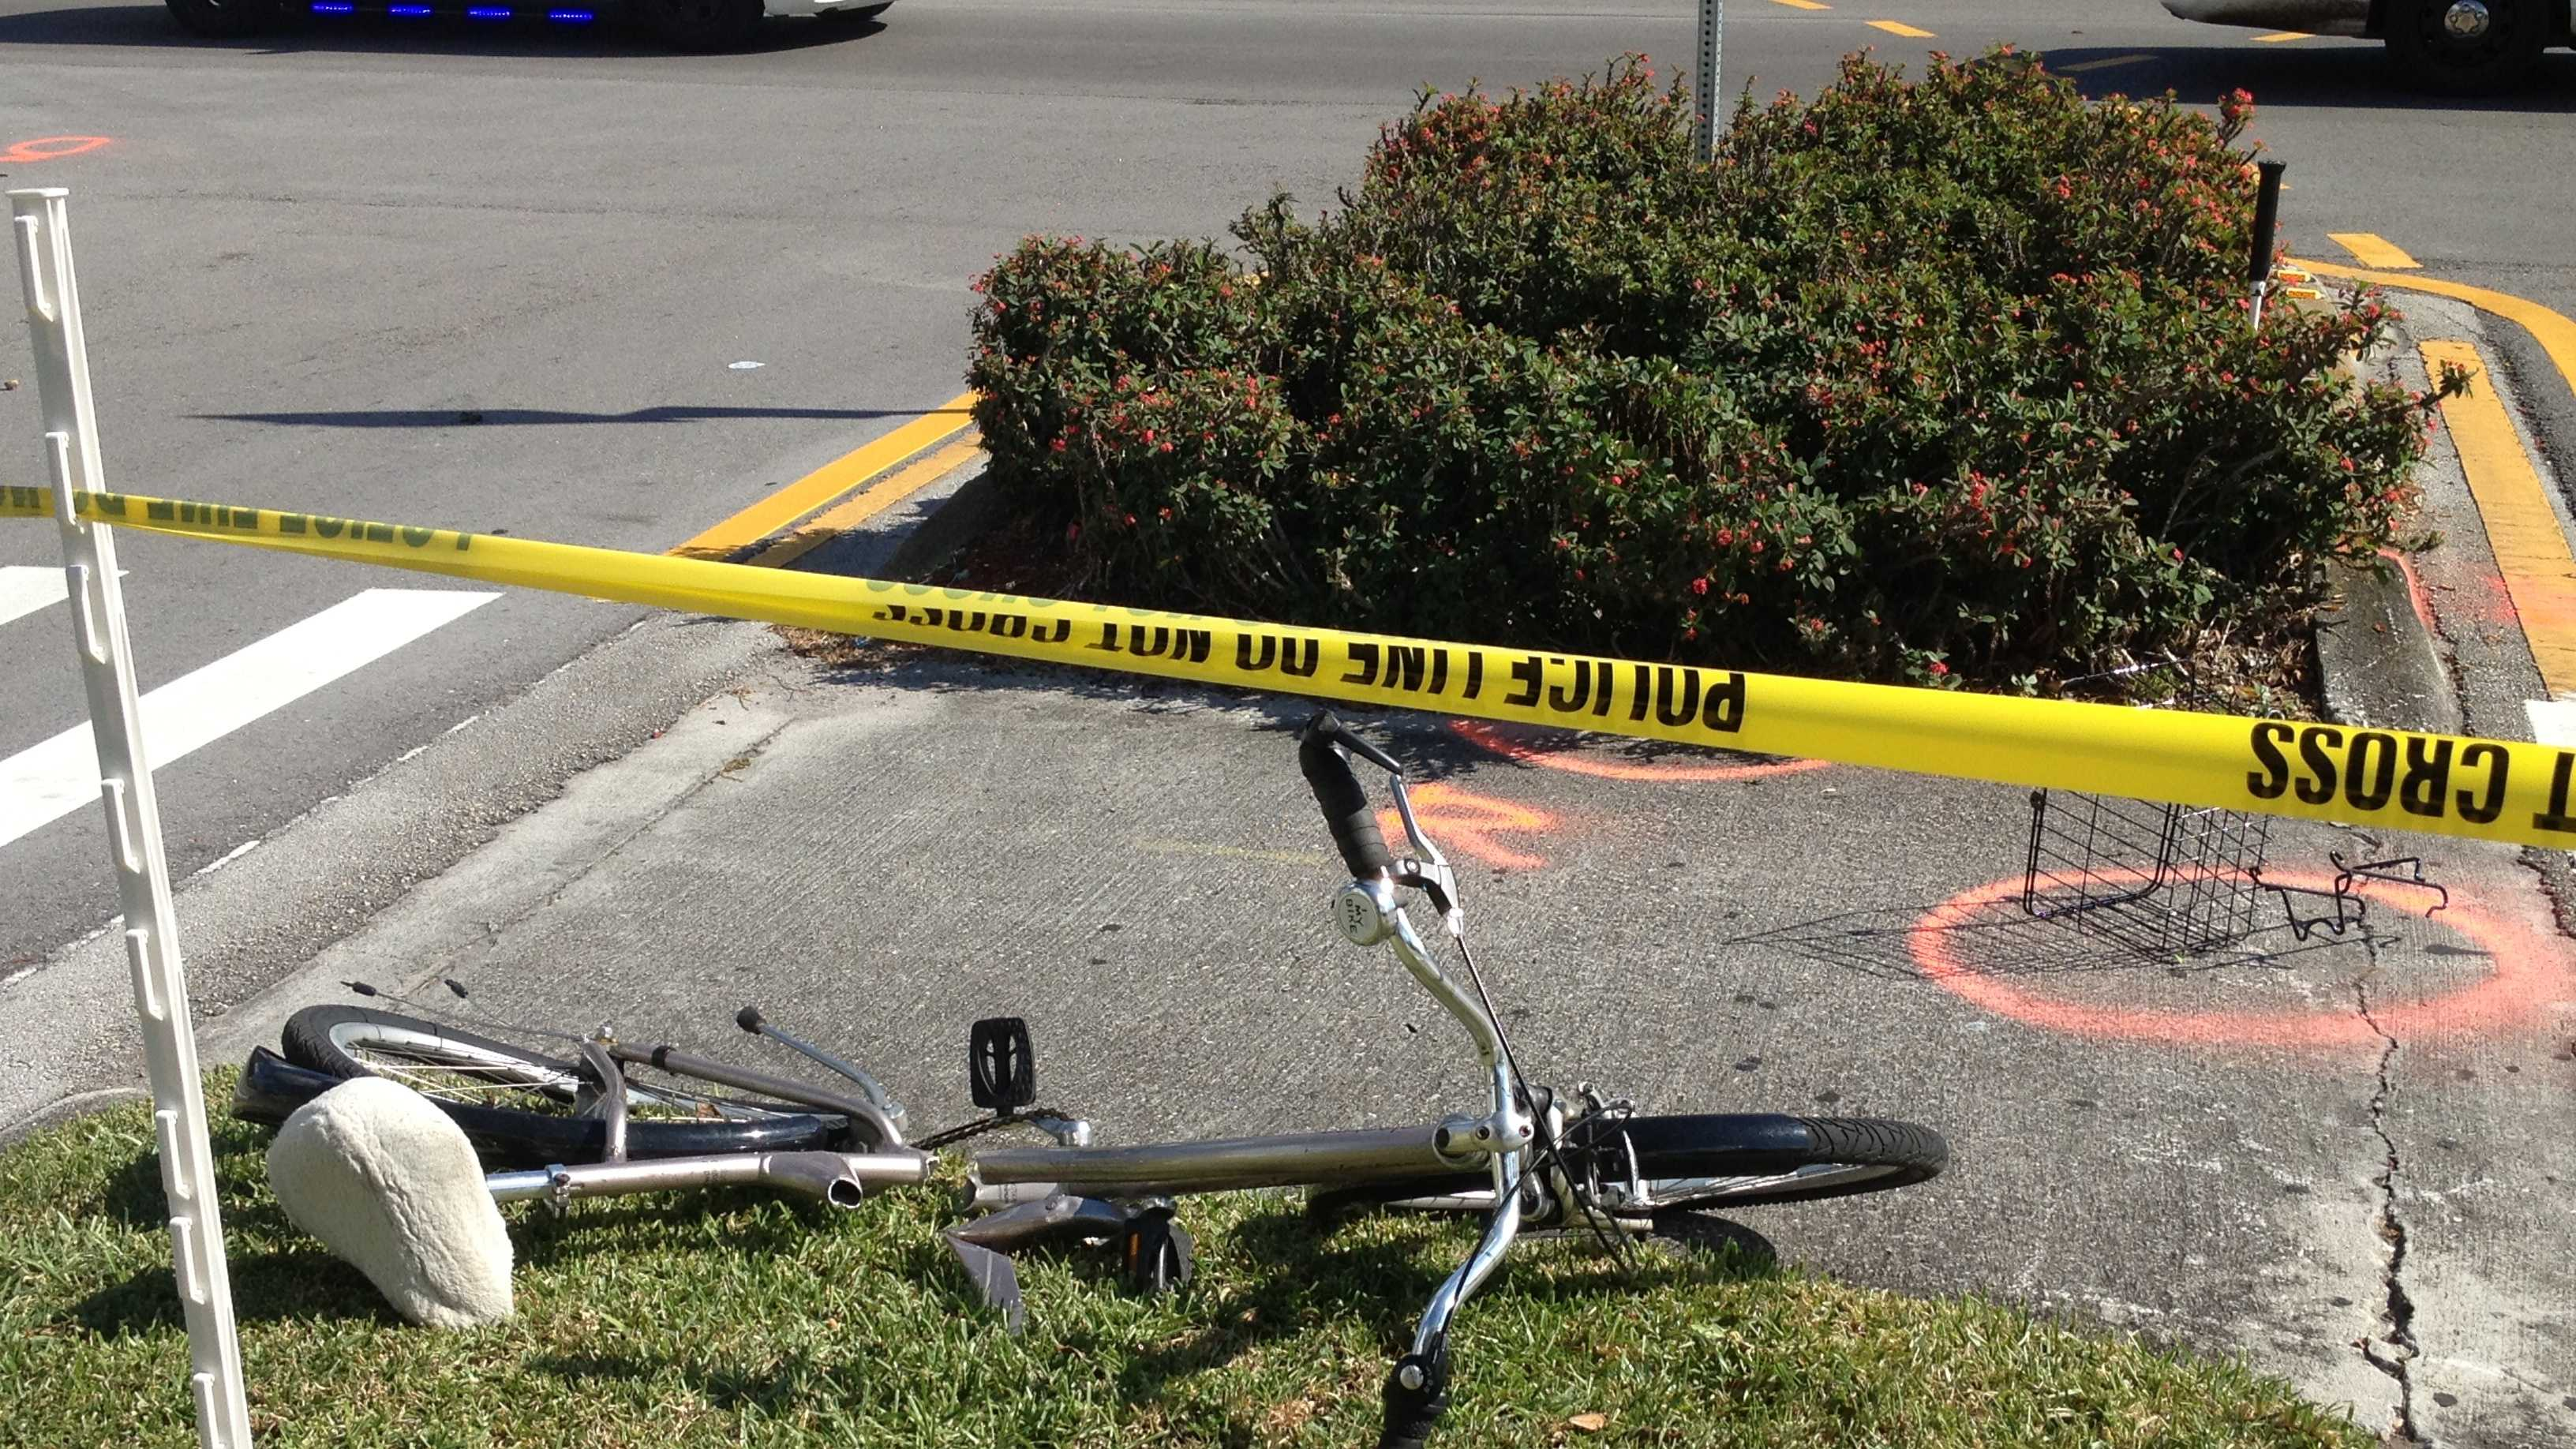 Adolf Lemp, 86, was struck by a car and killed while riding his bicycle in Port St. Lucie.